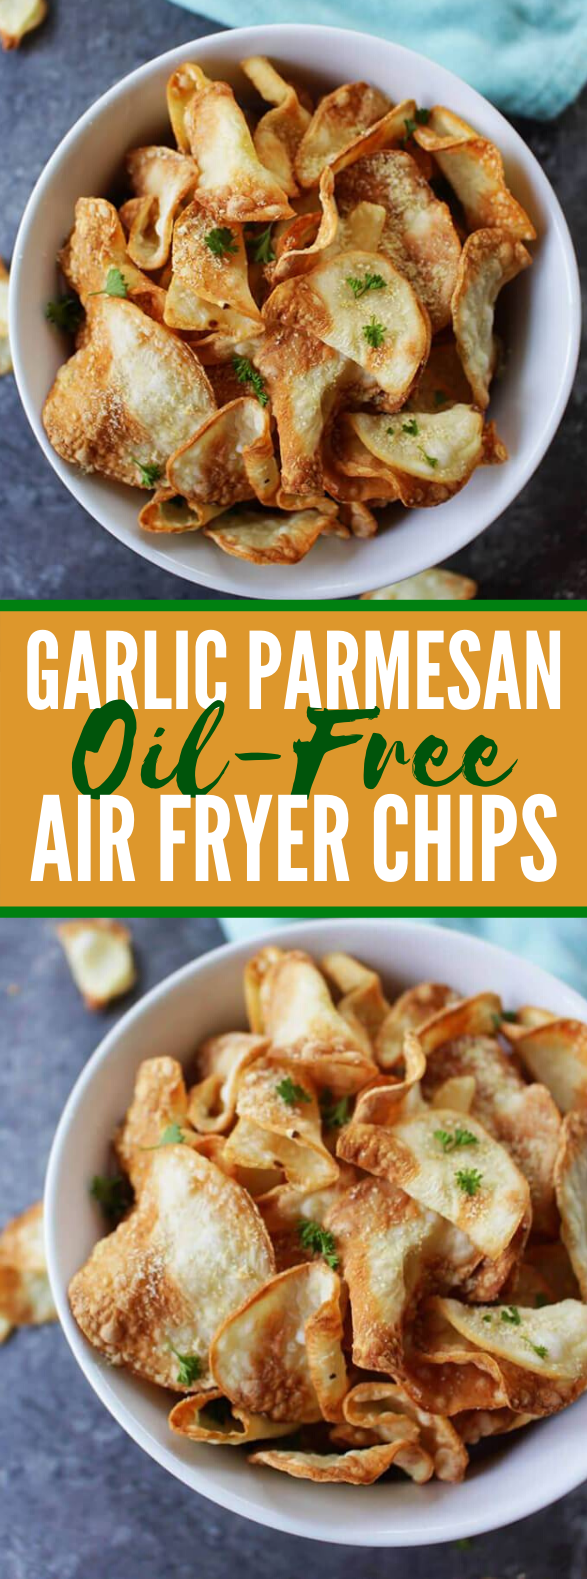 GARLIC PARMESAN OIL-FREE AIR FRYER CHIPS #healthy #vegan